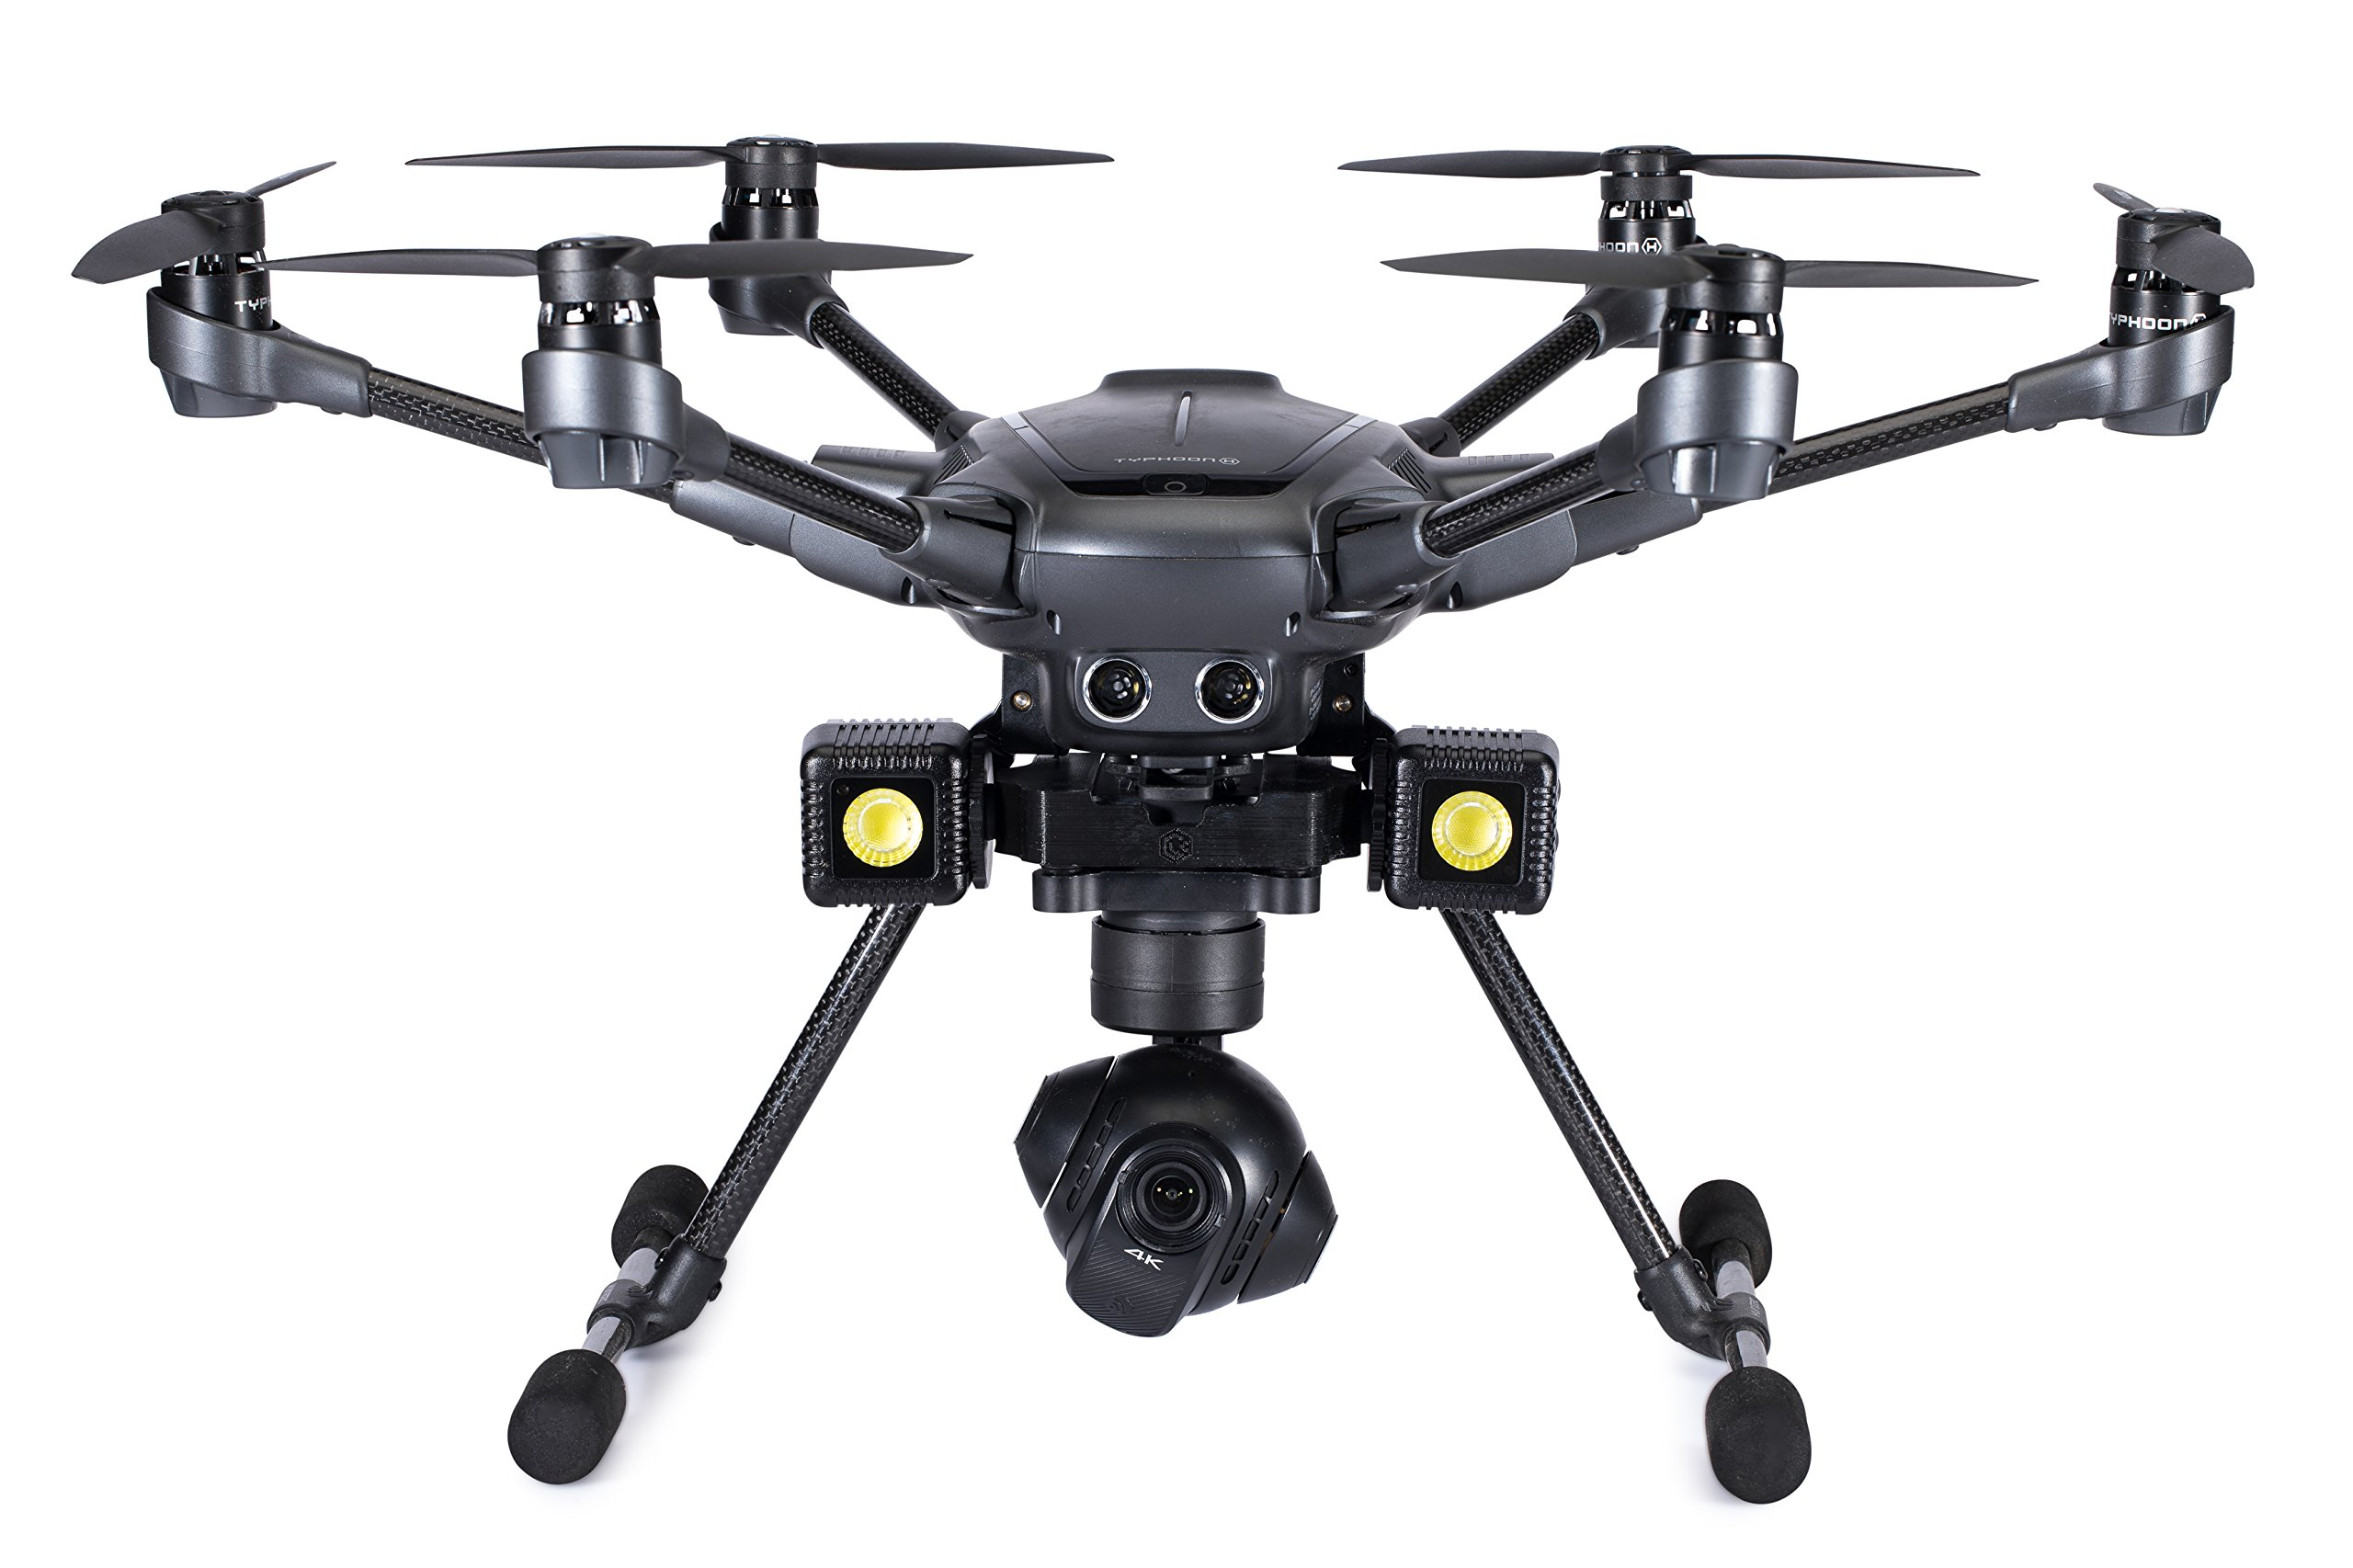 Lume Cube - Lighting Kit for Yuneec Typhoon H Drone (Includes 2 Lume Cubes + 1 Mount + Zipper Case)